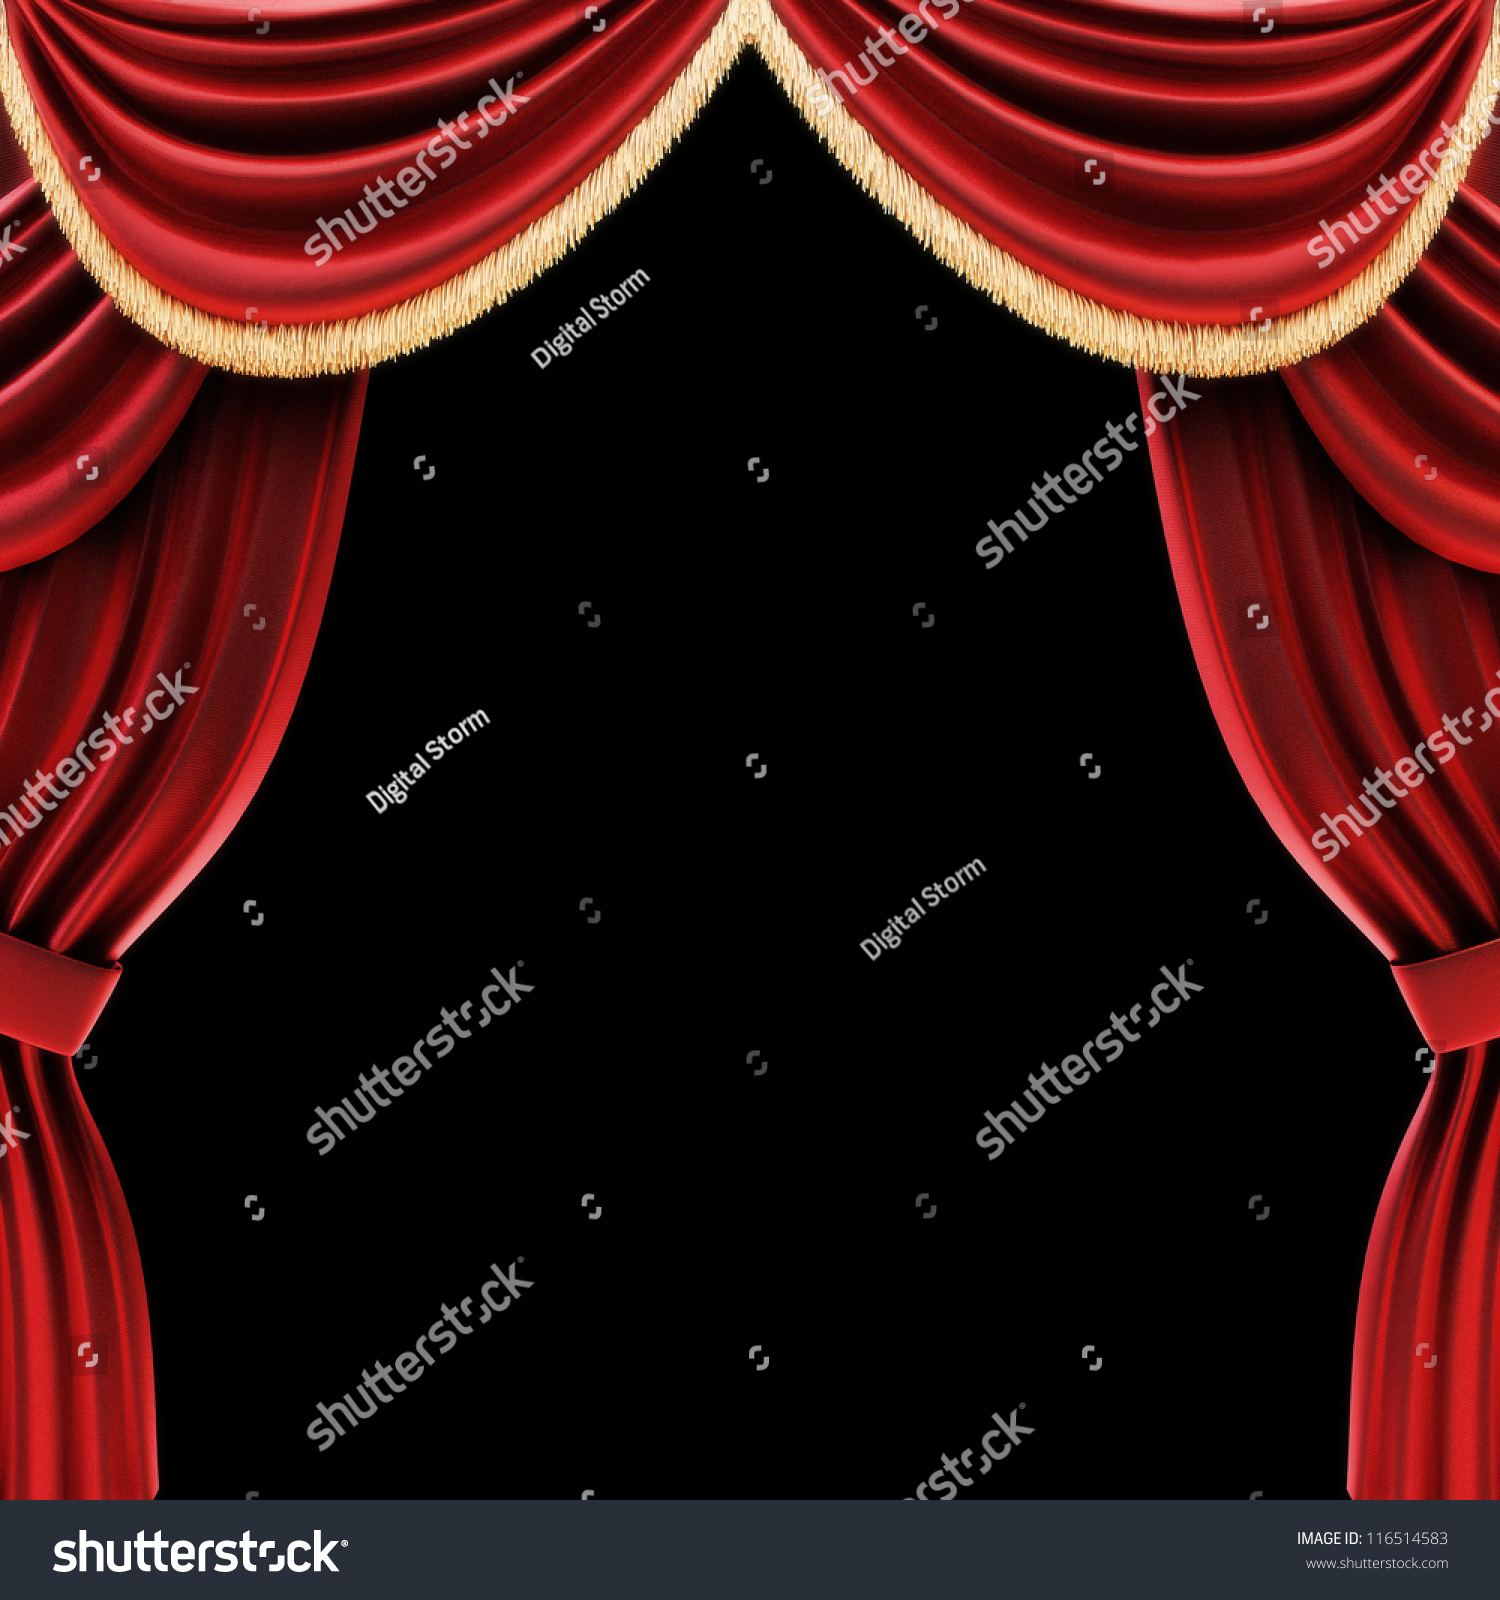 Black theatre curtain - Open Theater Drapes Or Stage Curtains With A Black Background